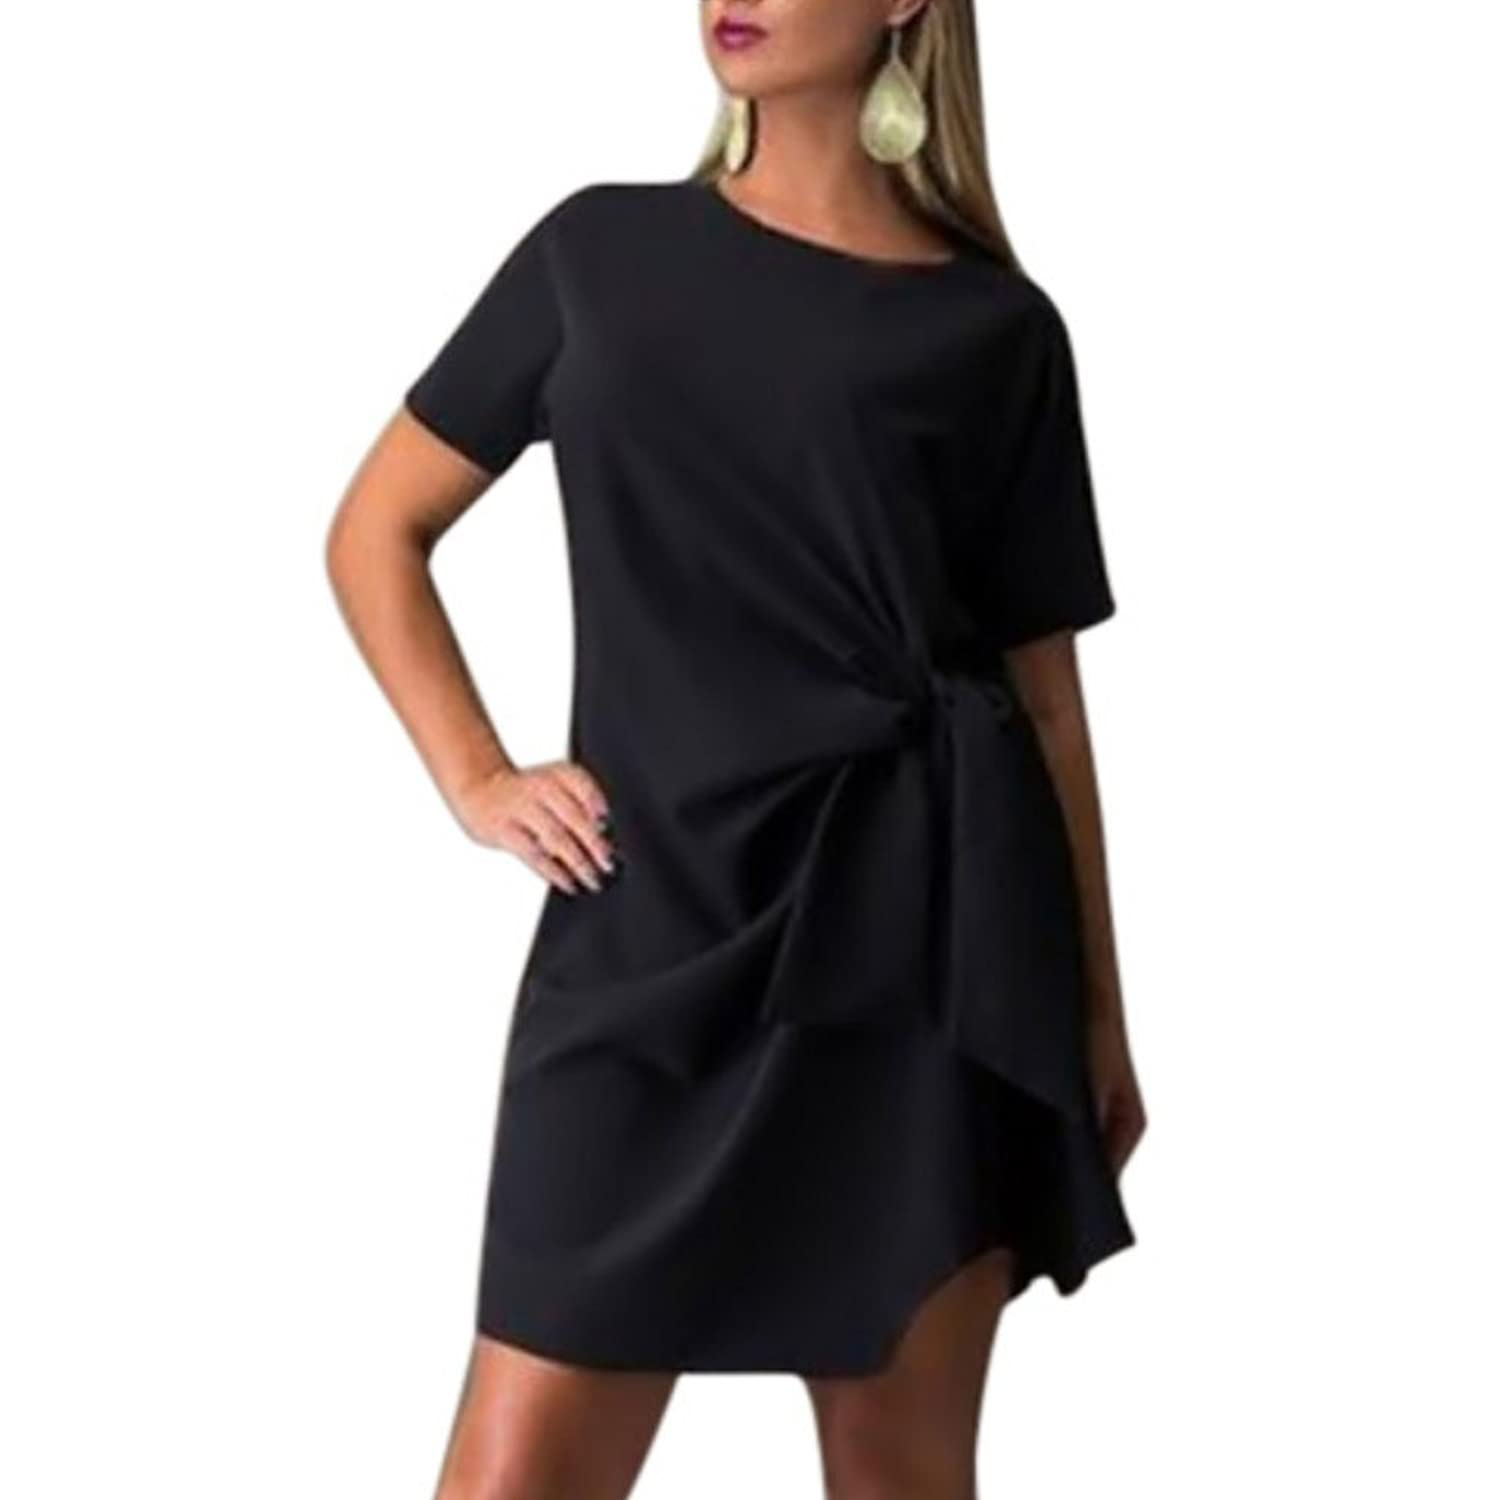 ROPALIA Damen Short Sleeve Plus Size Cocktail-Kleid Bodycon Minikleider